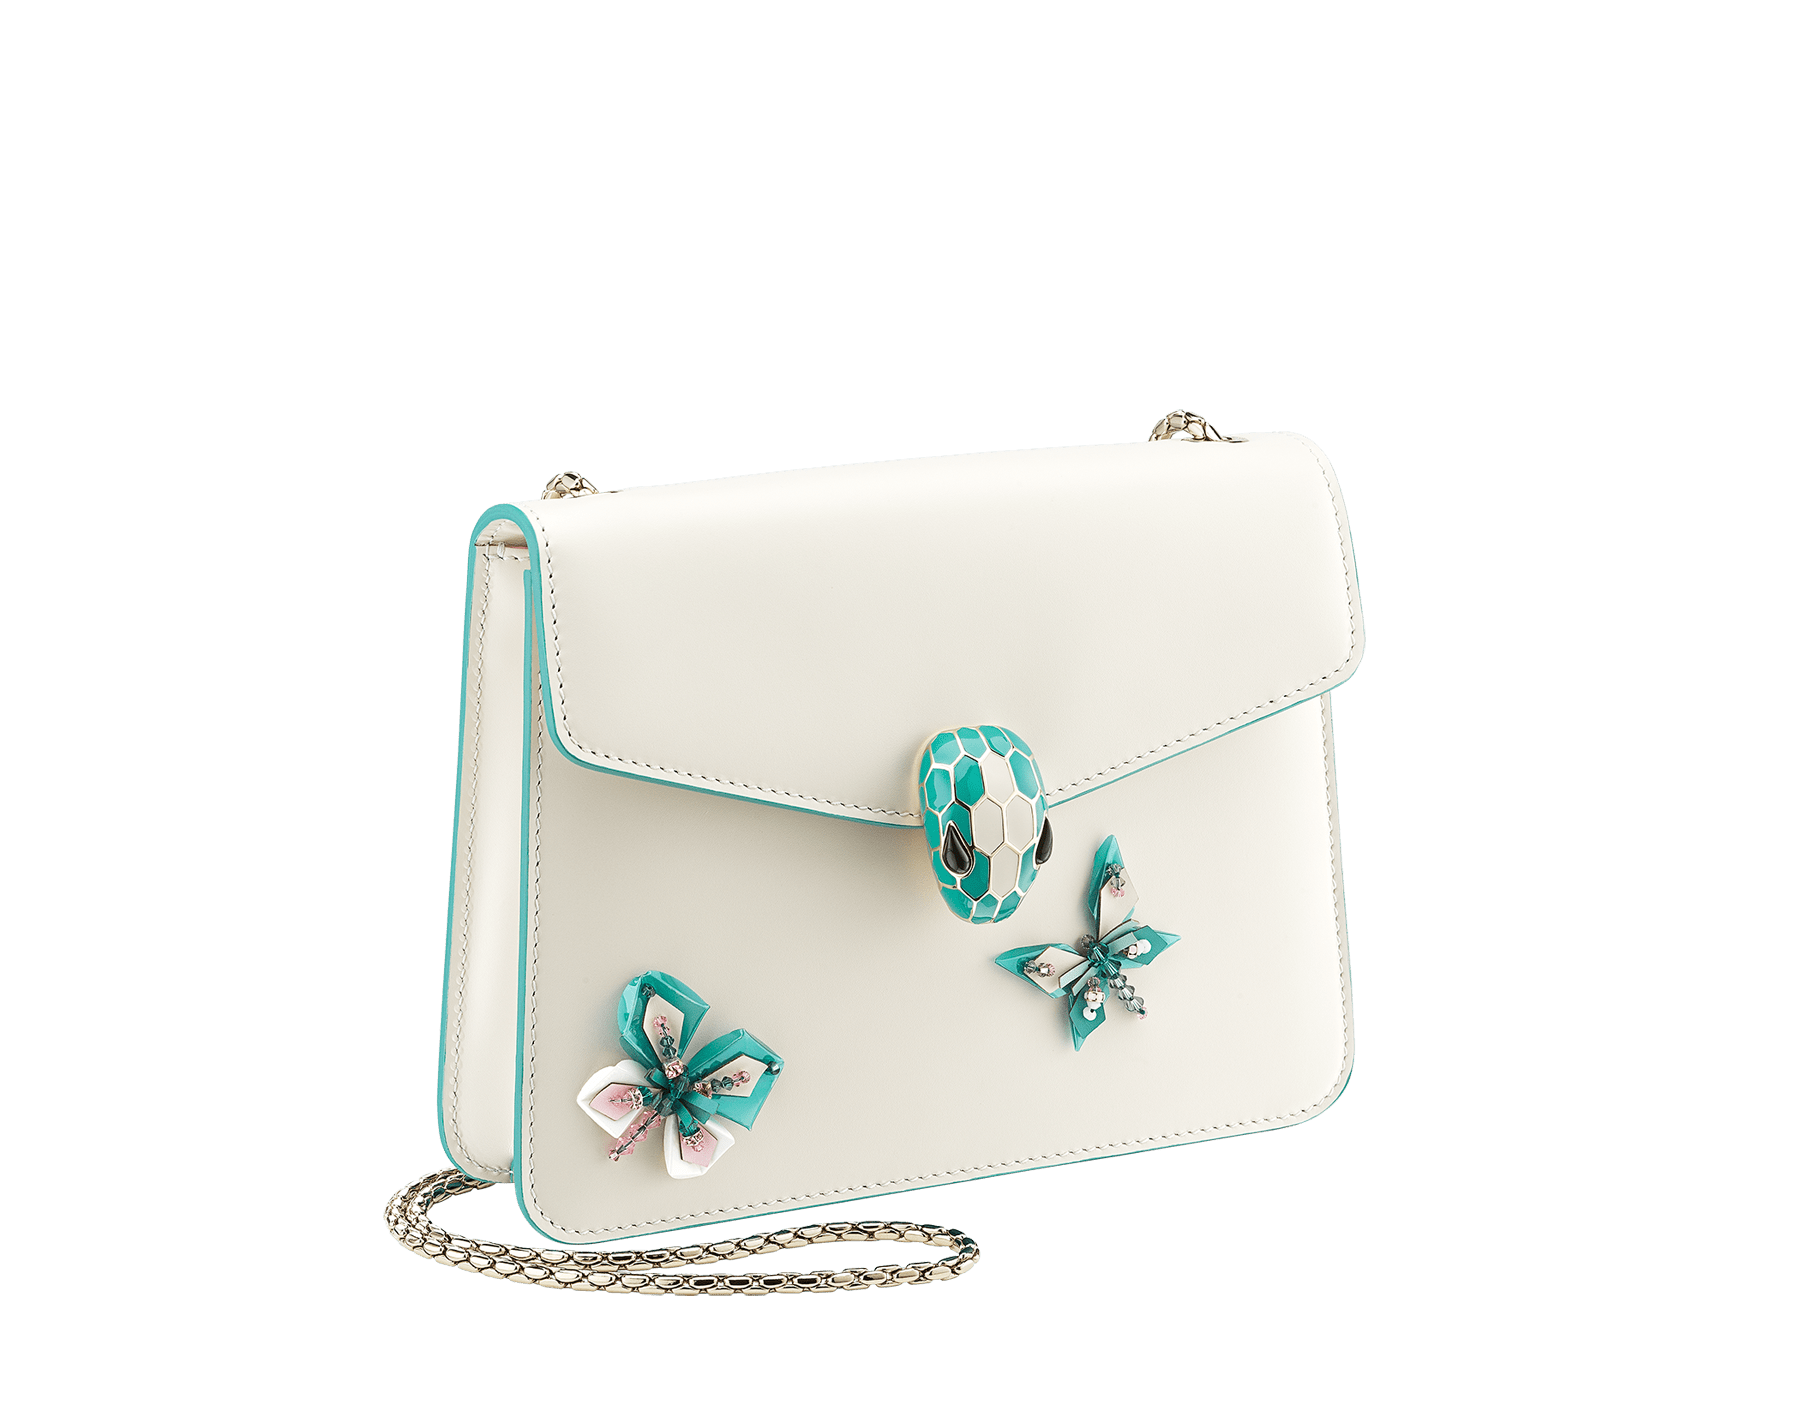 """Serpenti Forever"" crossbody bag in white agate calf leather with two arctic jade butterflies embroidered. Iconic snakehead closure in light gold plated brass enriched with arctic jade and white agate enamel and black onyx eyes. 289247 image 2"